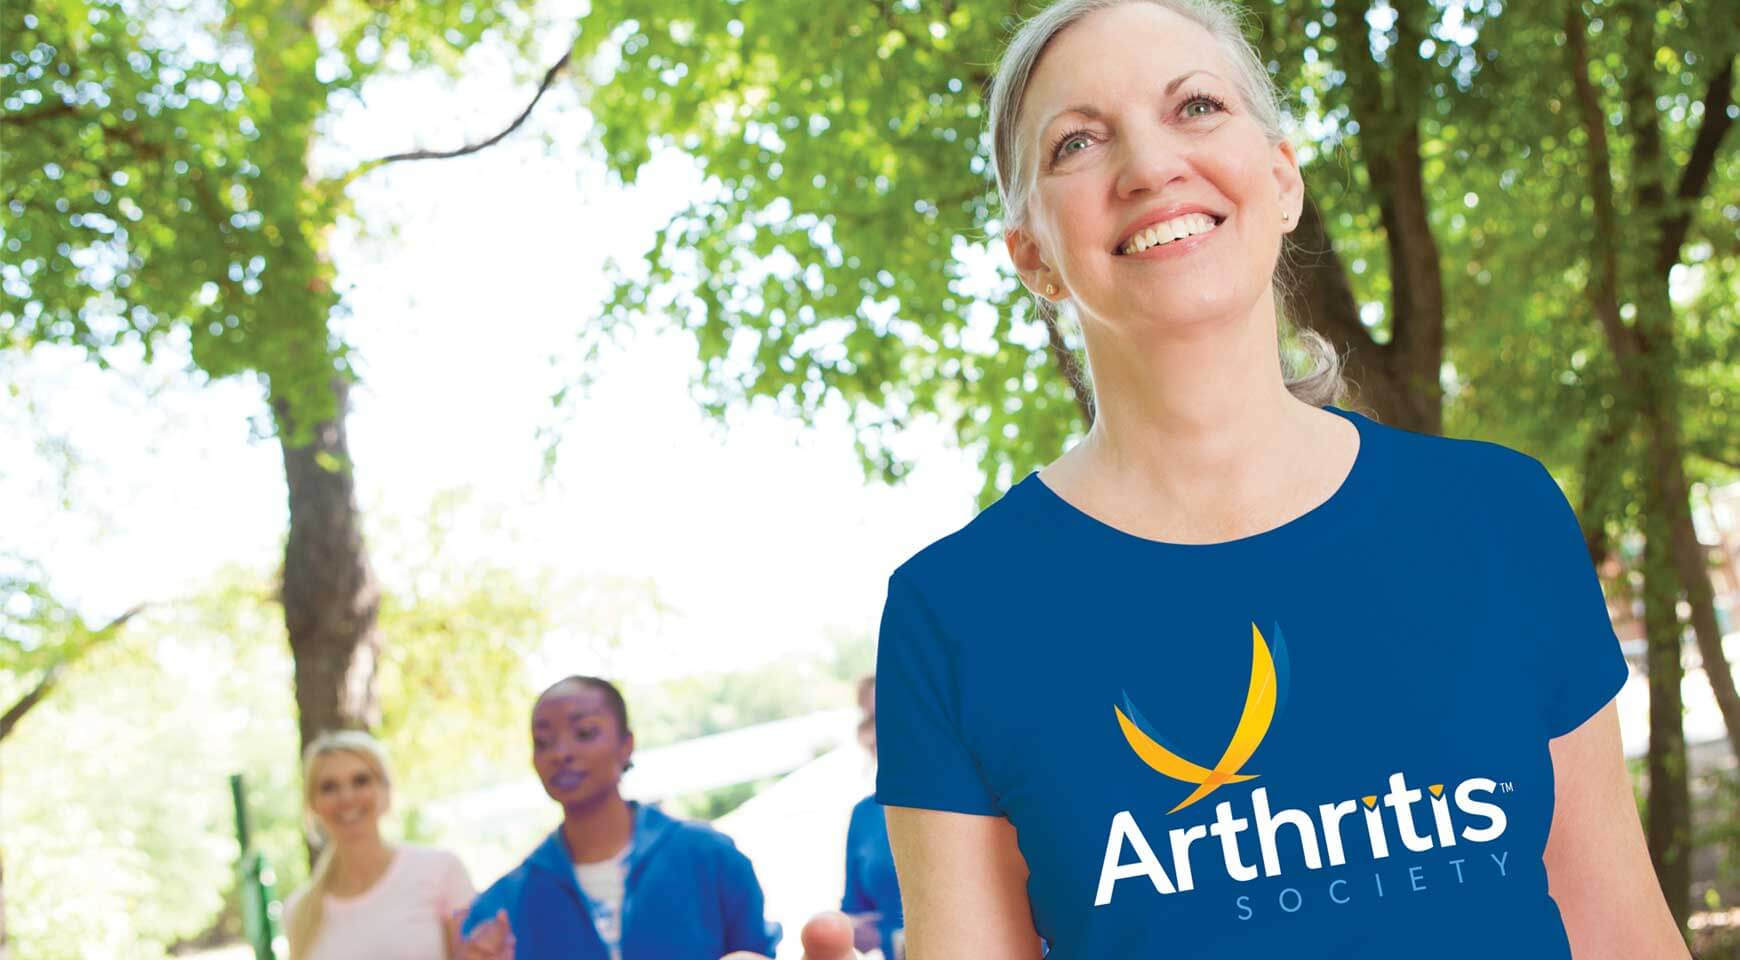 Walk For Arthritis (June 1<sup>st</sup> or 2<sup>nd</sup>) - Jun/01